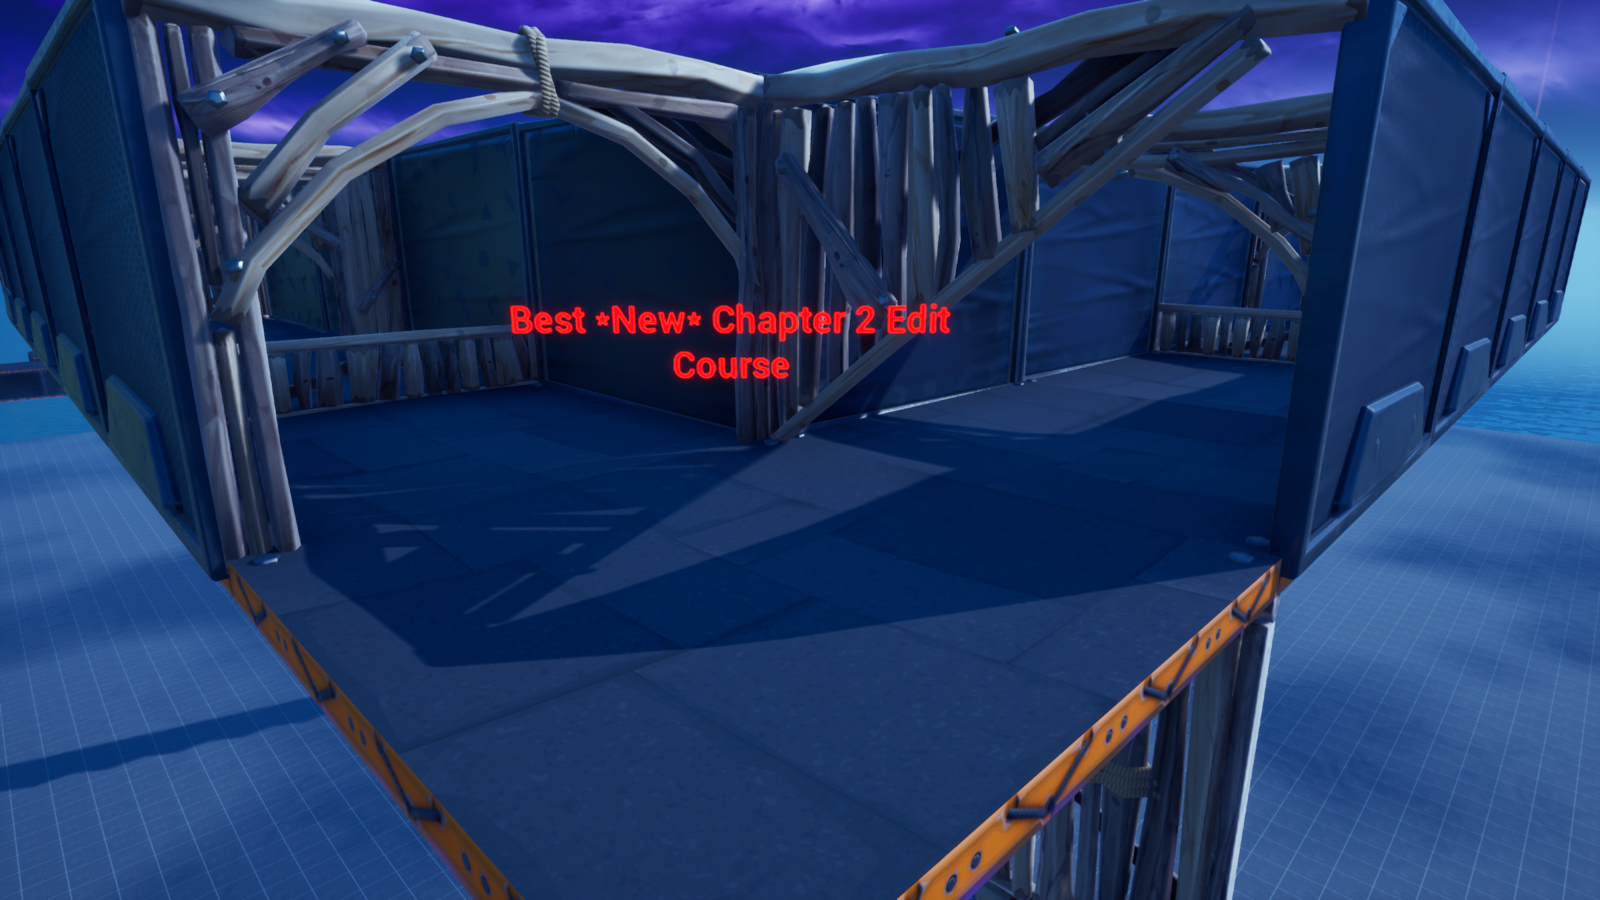 Skull Crusher99 Chapter 2 Edit Course Our fortnite warm up & edit courses list guide runs through the best options in creative mode for getting ready to play the game in season 11. skull crusher99 chapter 2 edit course